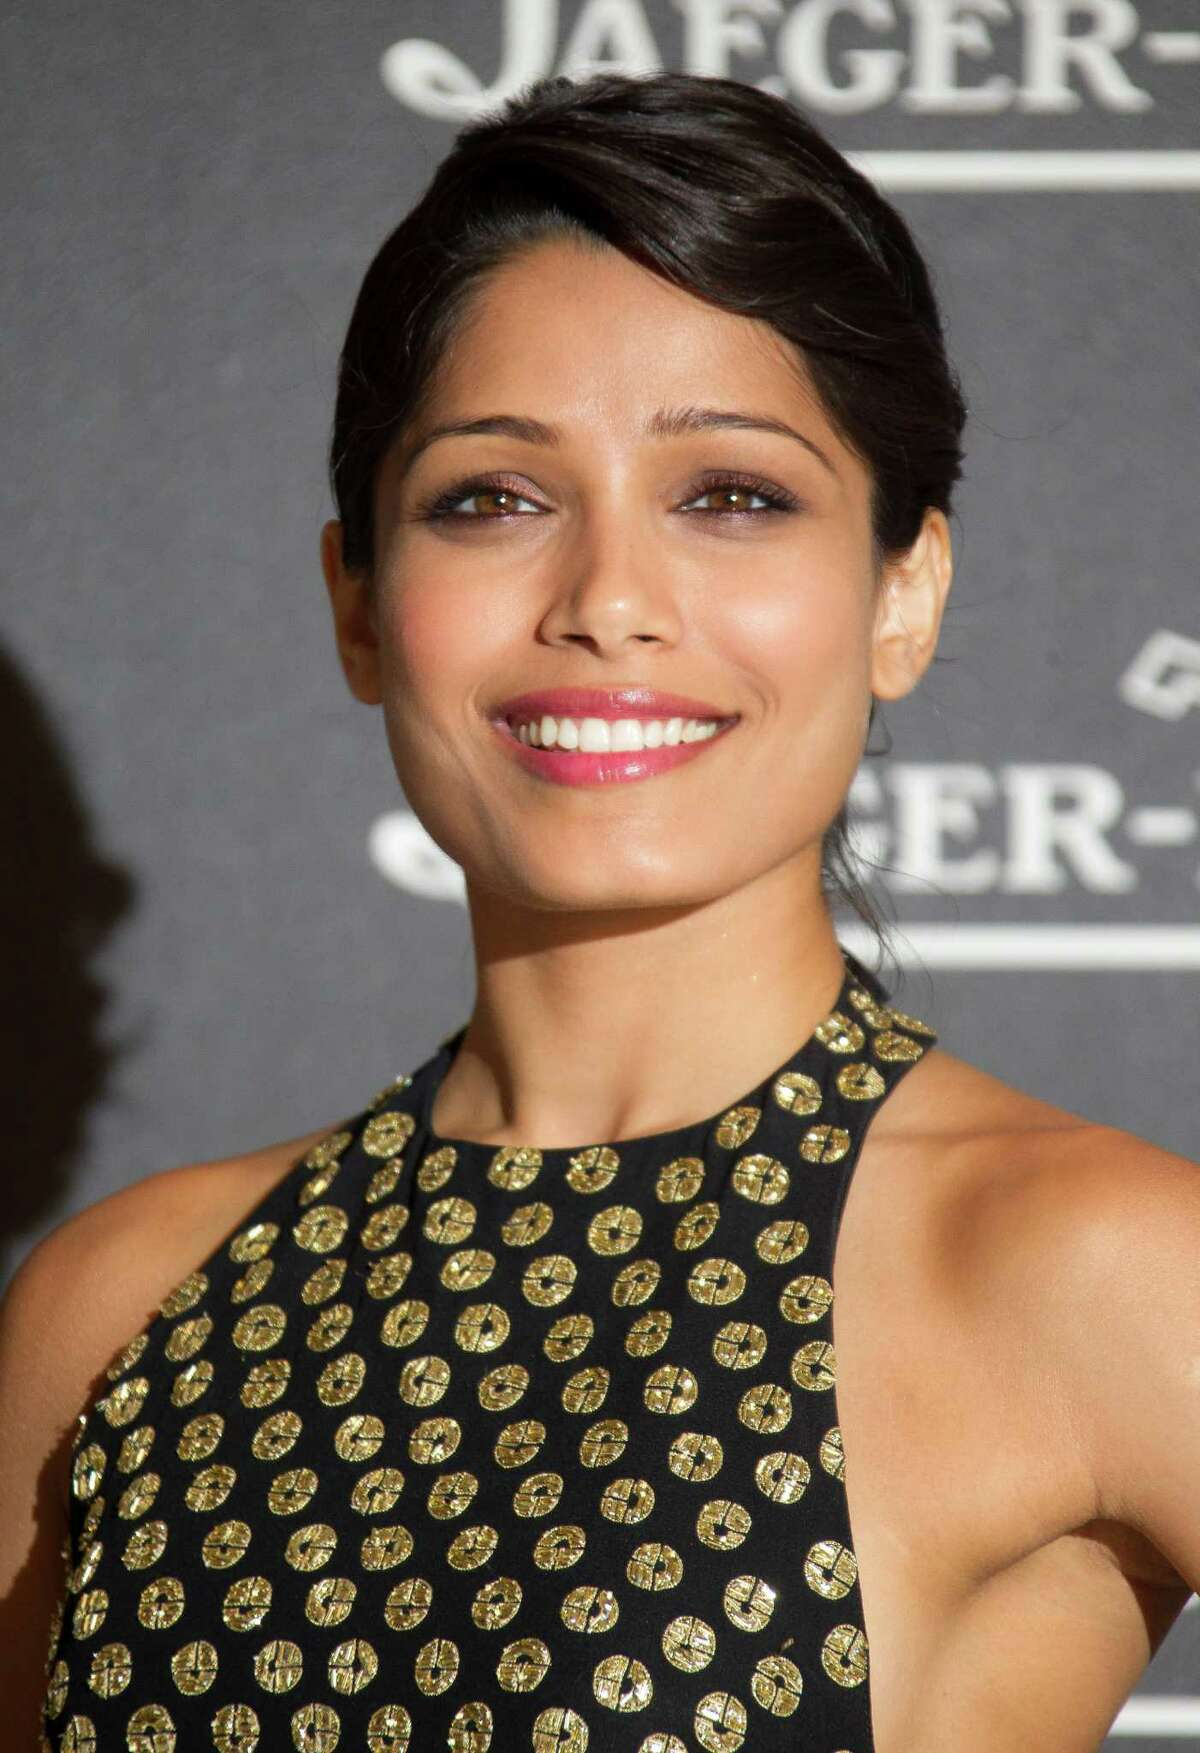 FILE - In a Tuesday, Sept. 4, 2012 file photo, actress Freida Pinto arrives for a party in Venice, Italy. Pinto introduced ?Girl Rising?, Richard Robbins' new movie, Monday, Jan. 21, 2013 at Sundance Film Festival by sharing some powerful statistics: There are 66 million girls who are not in school; 14 million girls under 18 who will be married this year; and 150 million girls are victims of sexual violence each year. (AP Photo/Joel Ryan, File)